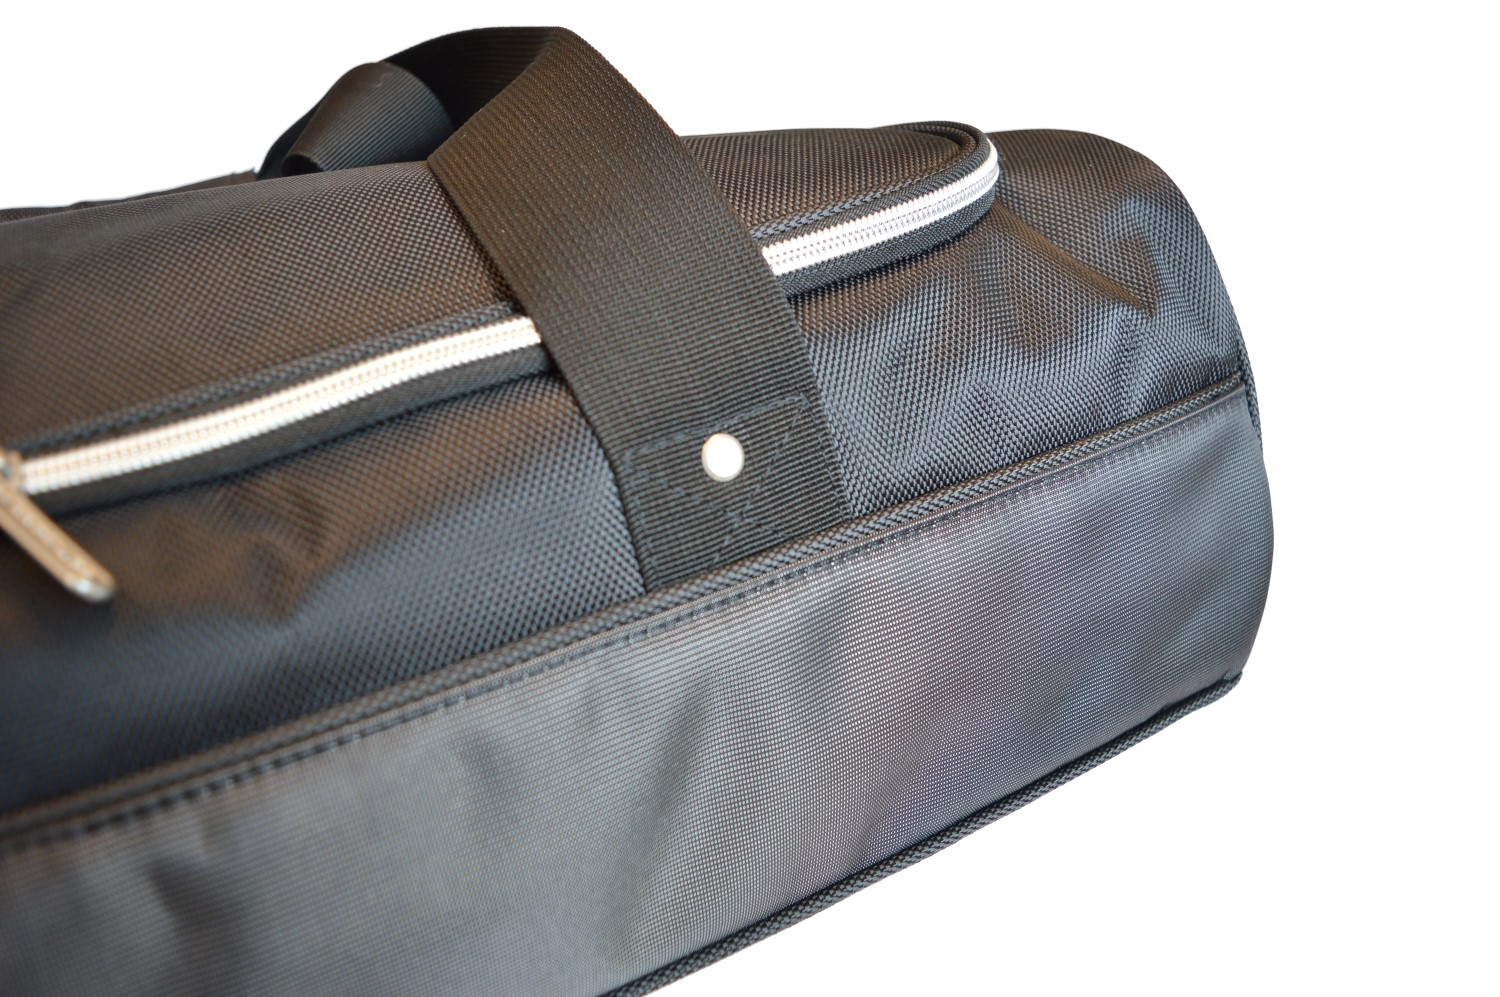 Car-Bags.com travel bags are made of high quality 1680D nylon